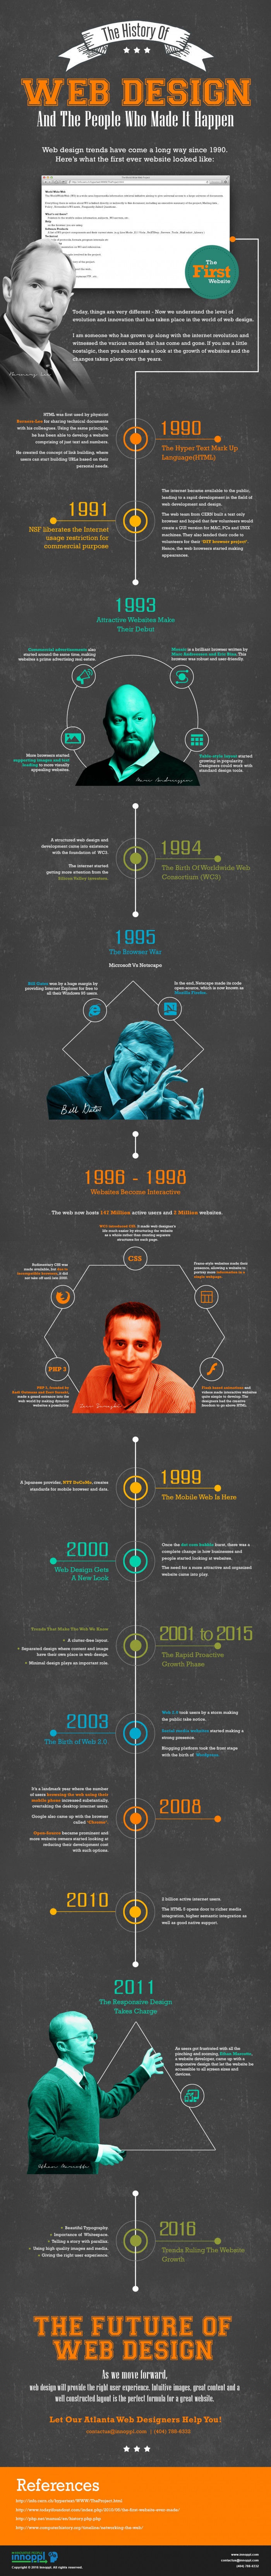 The History Of Web Design And The People Who Made It happen